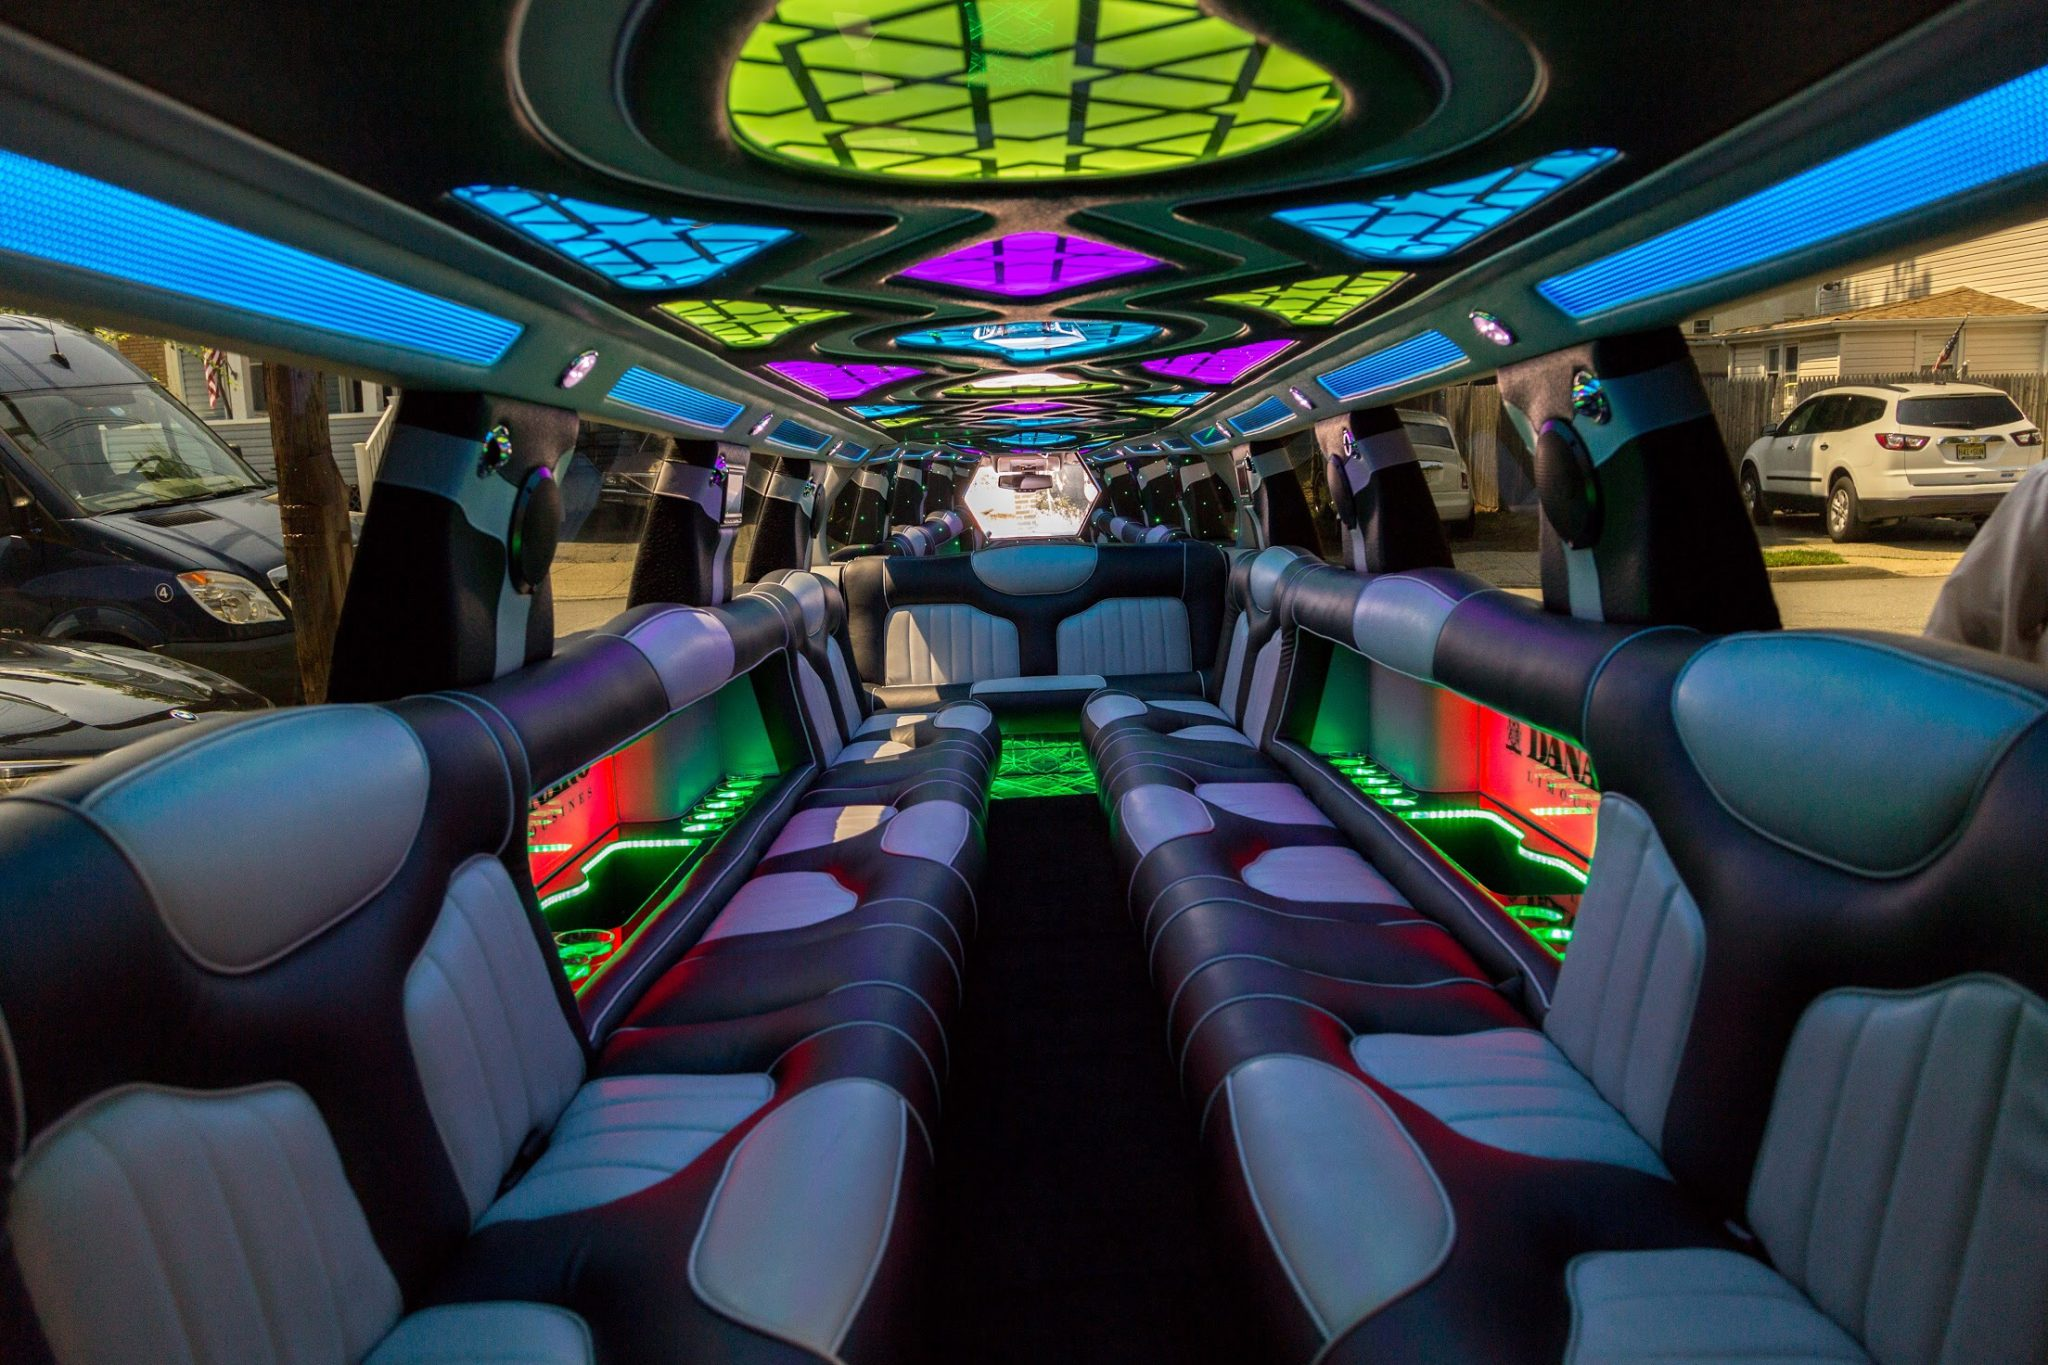 Fort Worth Infinity Limo Rates, Limousine, White, Black Car Service, Wedding, Round Trip, Anniversary, Nightlife, Getaway, Birthday, Brewery Tour, Wine Tasting, Funeral, Memorial, Bachelor, Bachelorette, City Tours, Events, Concerts, Airport, SUV